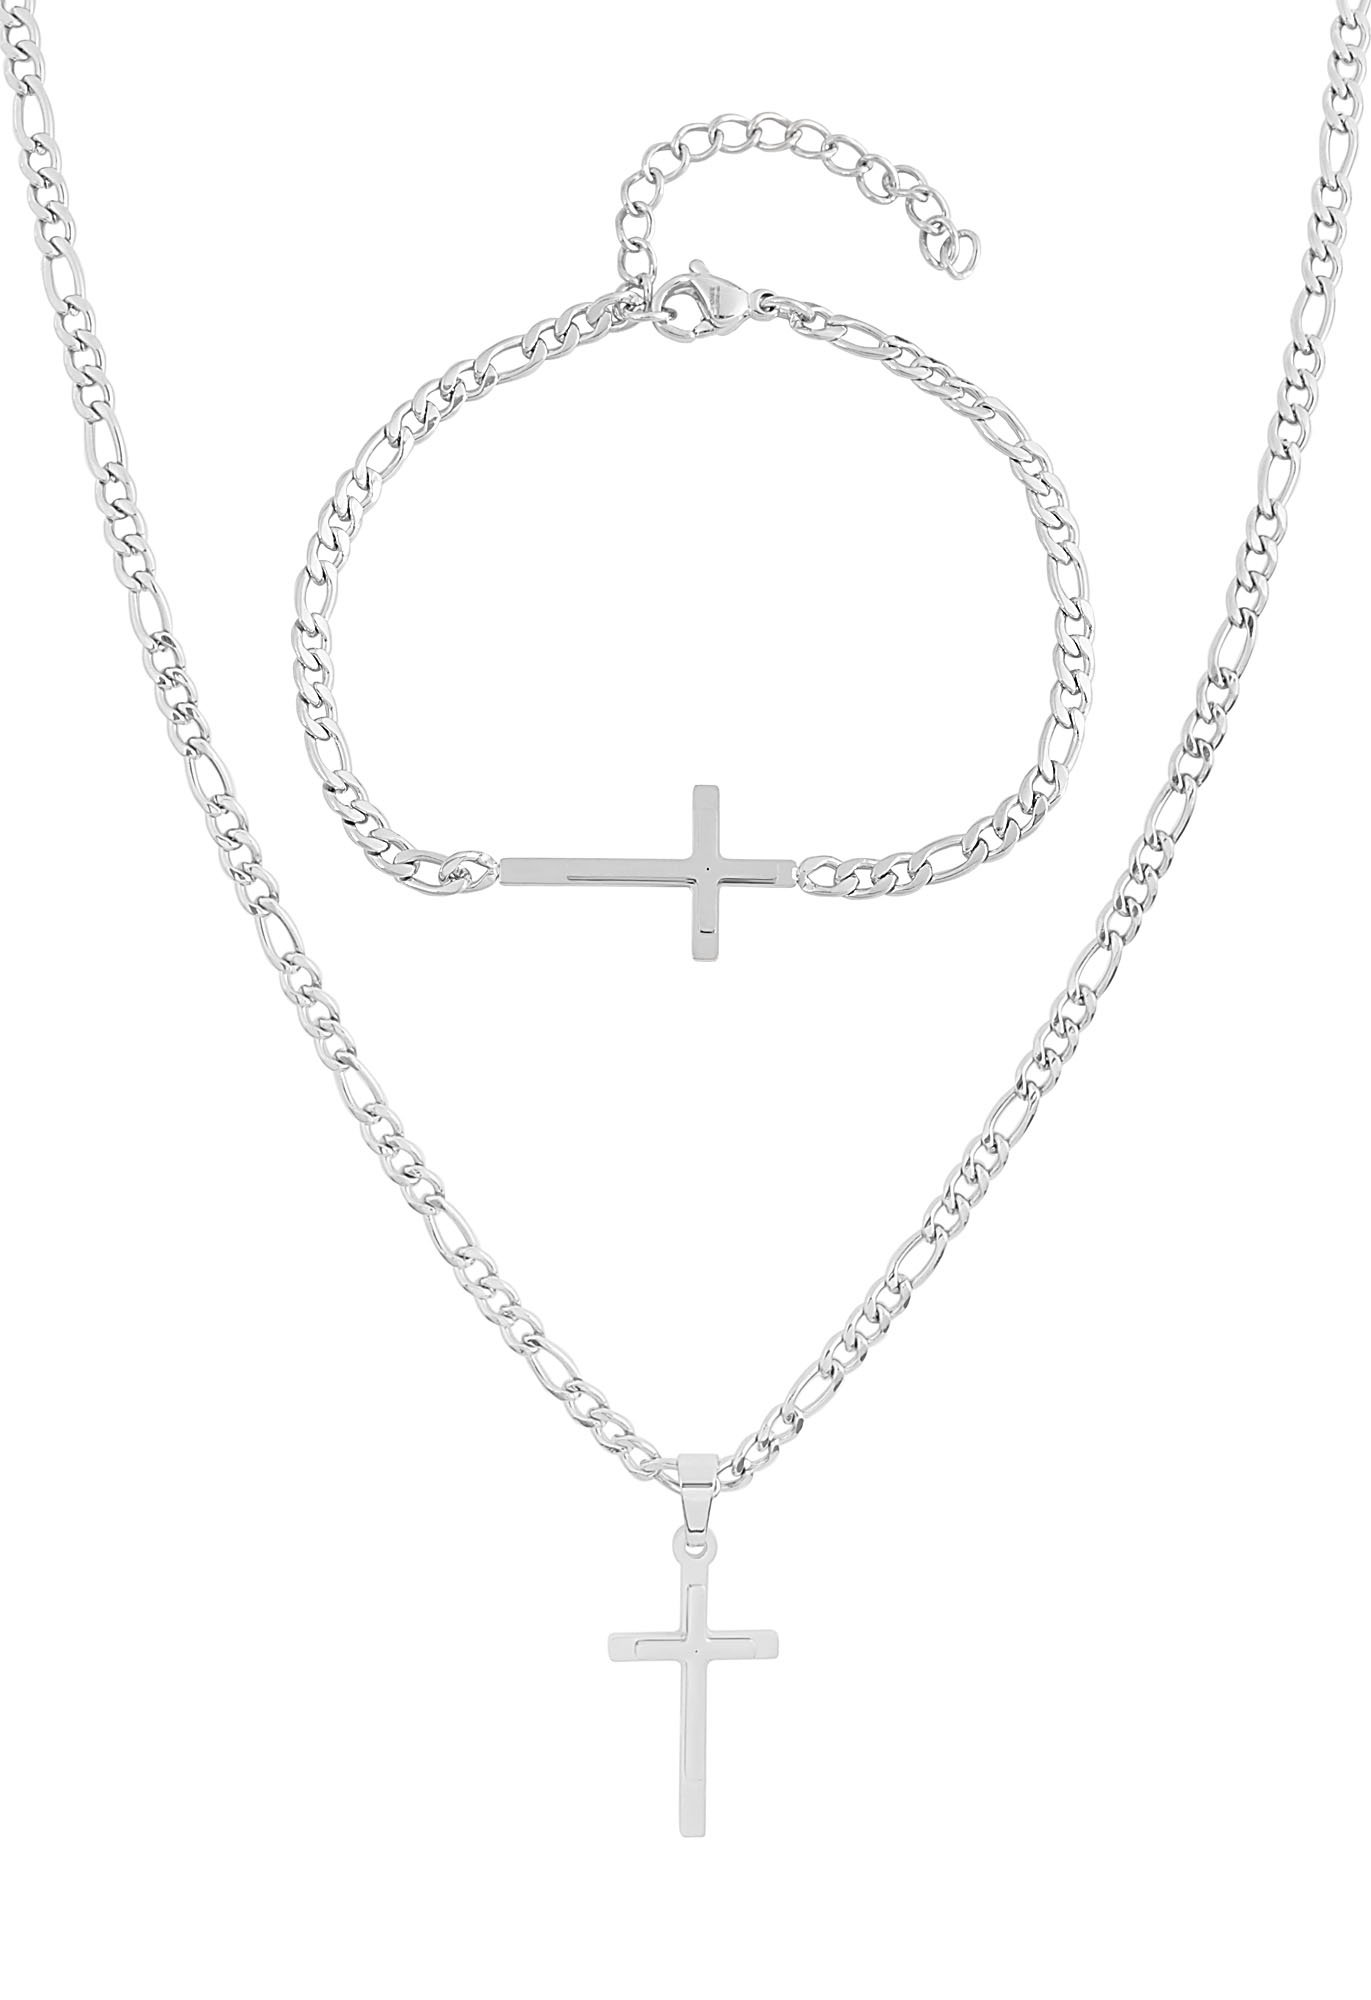 EDFORCE 20 inch Women's Men's Stainless Steel Silver Figaro Link Chain Necklace Cross Pendant with Matching 8.5 inch Figaro Link Bracelet Jewelry